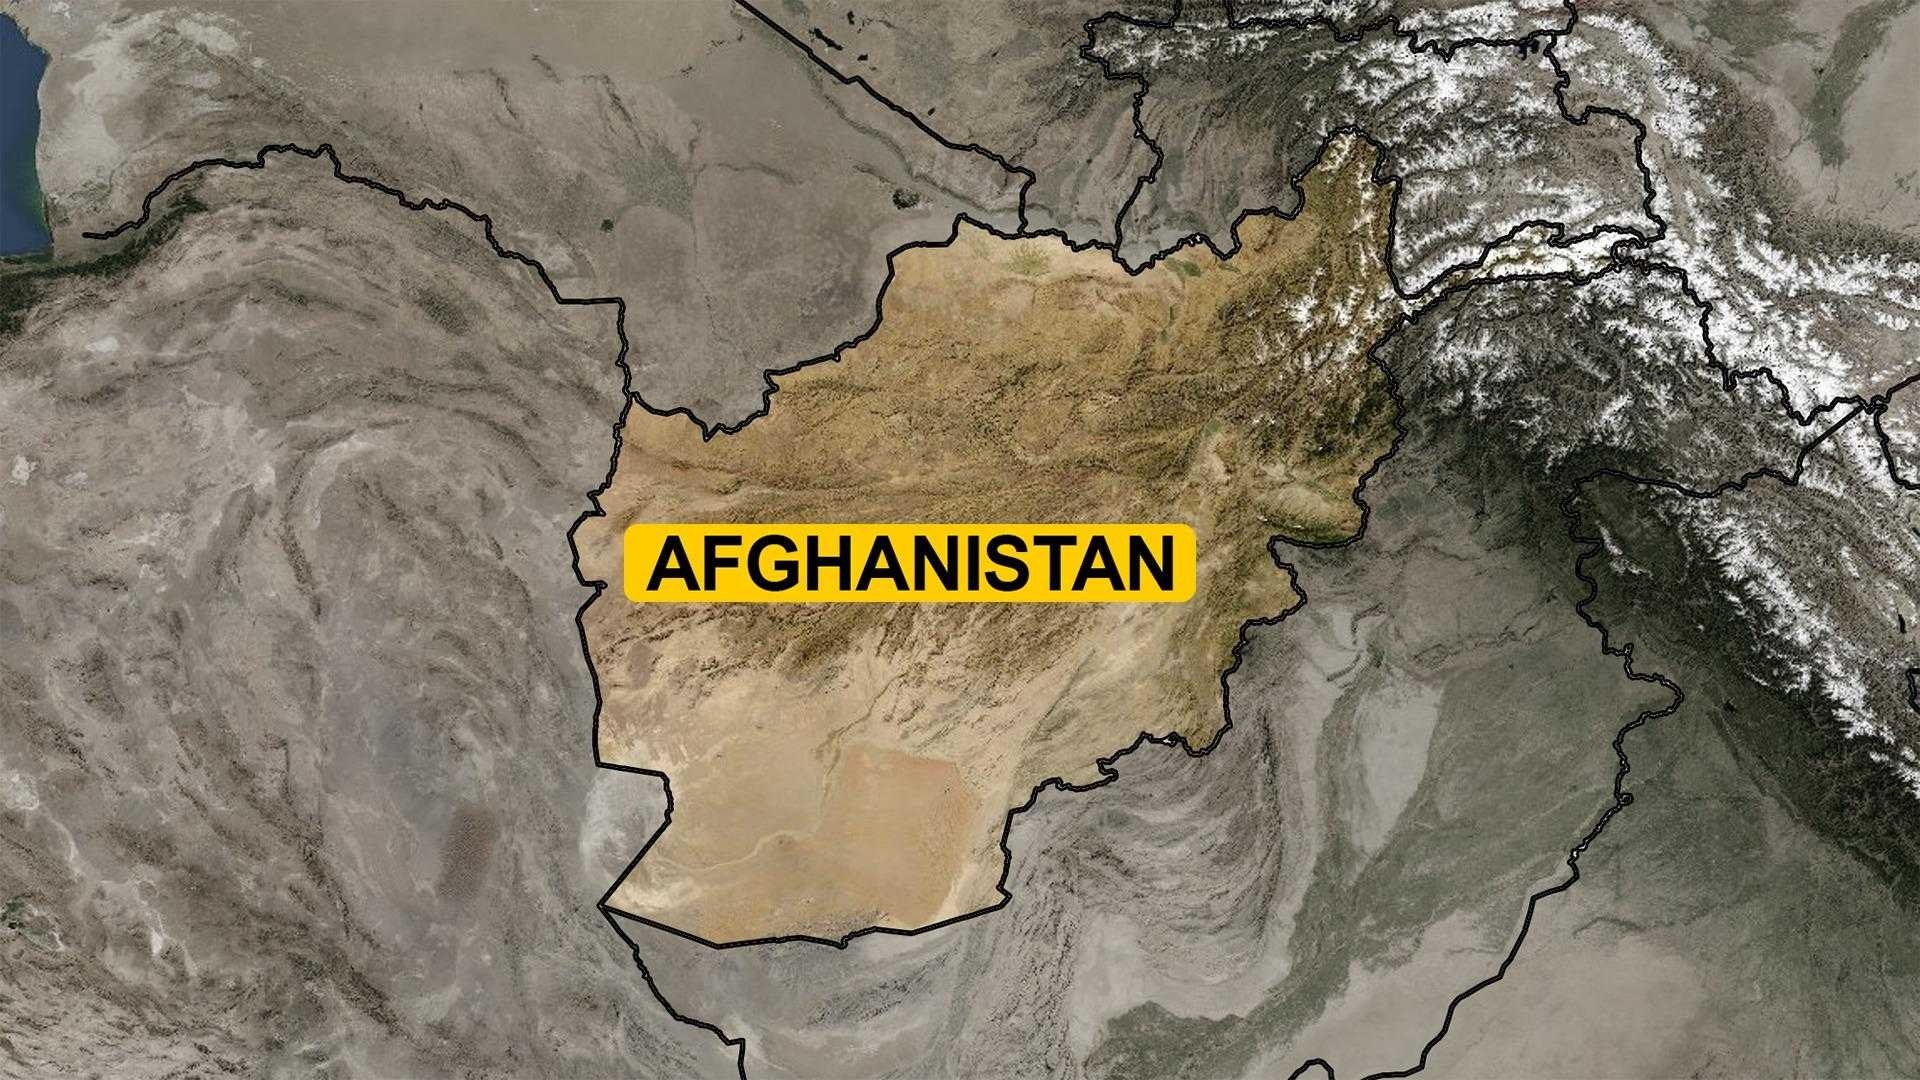 USA service member killed in Afghanistan